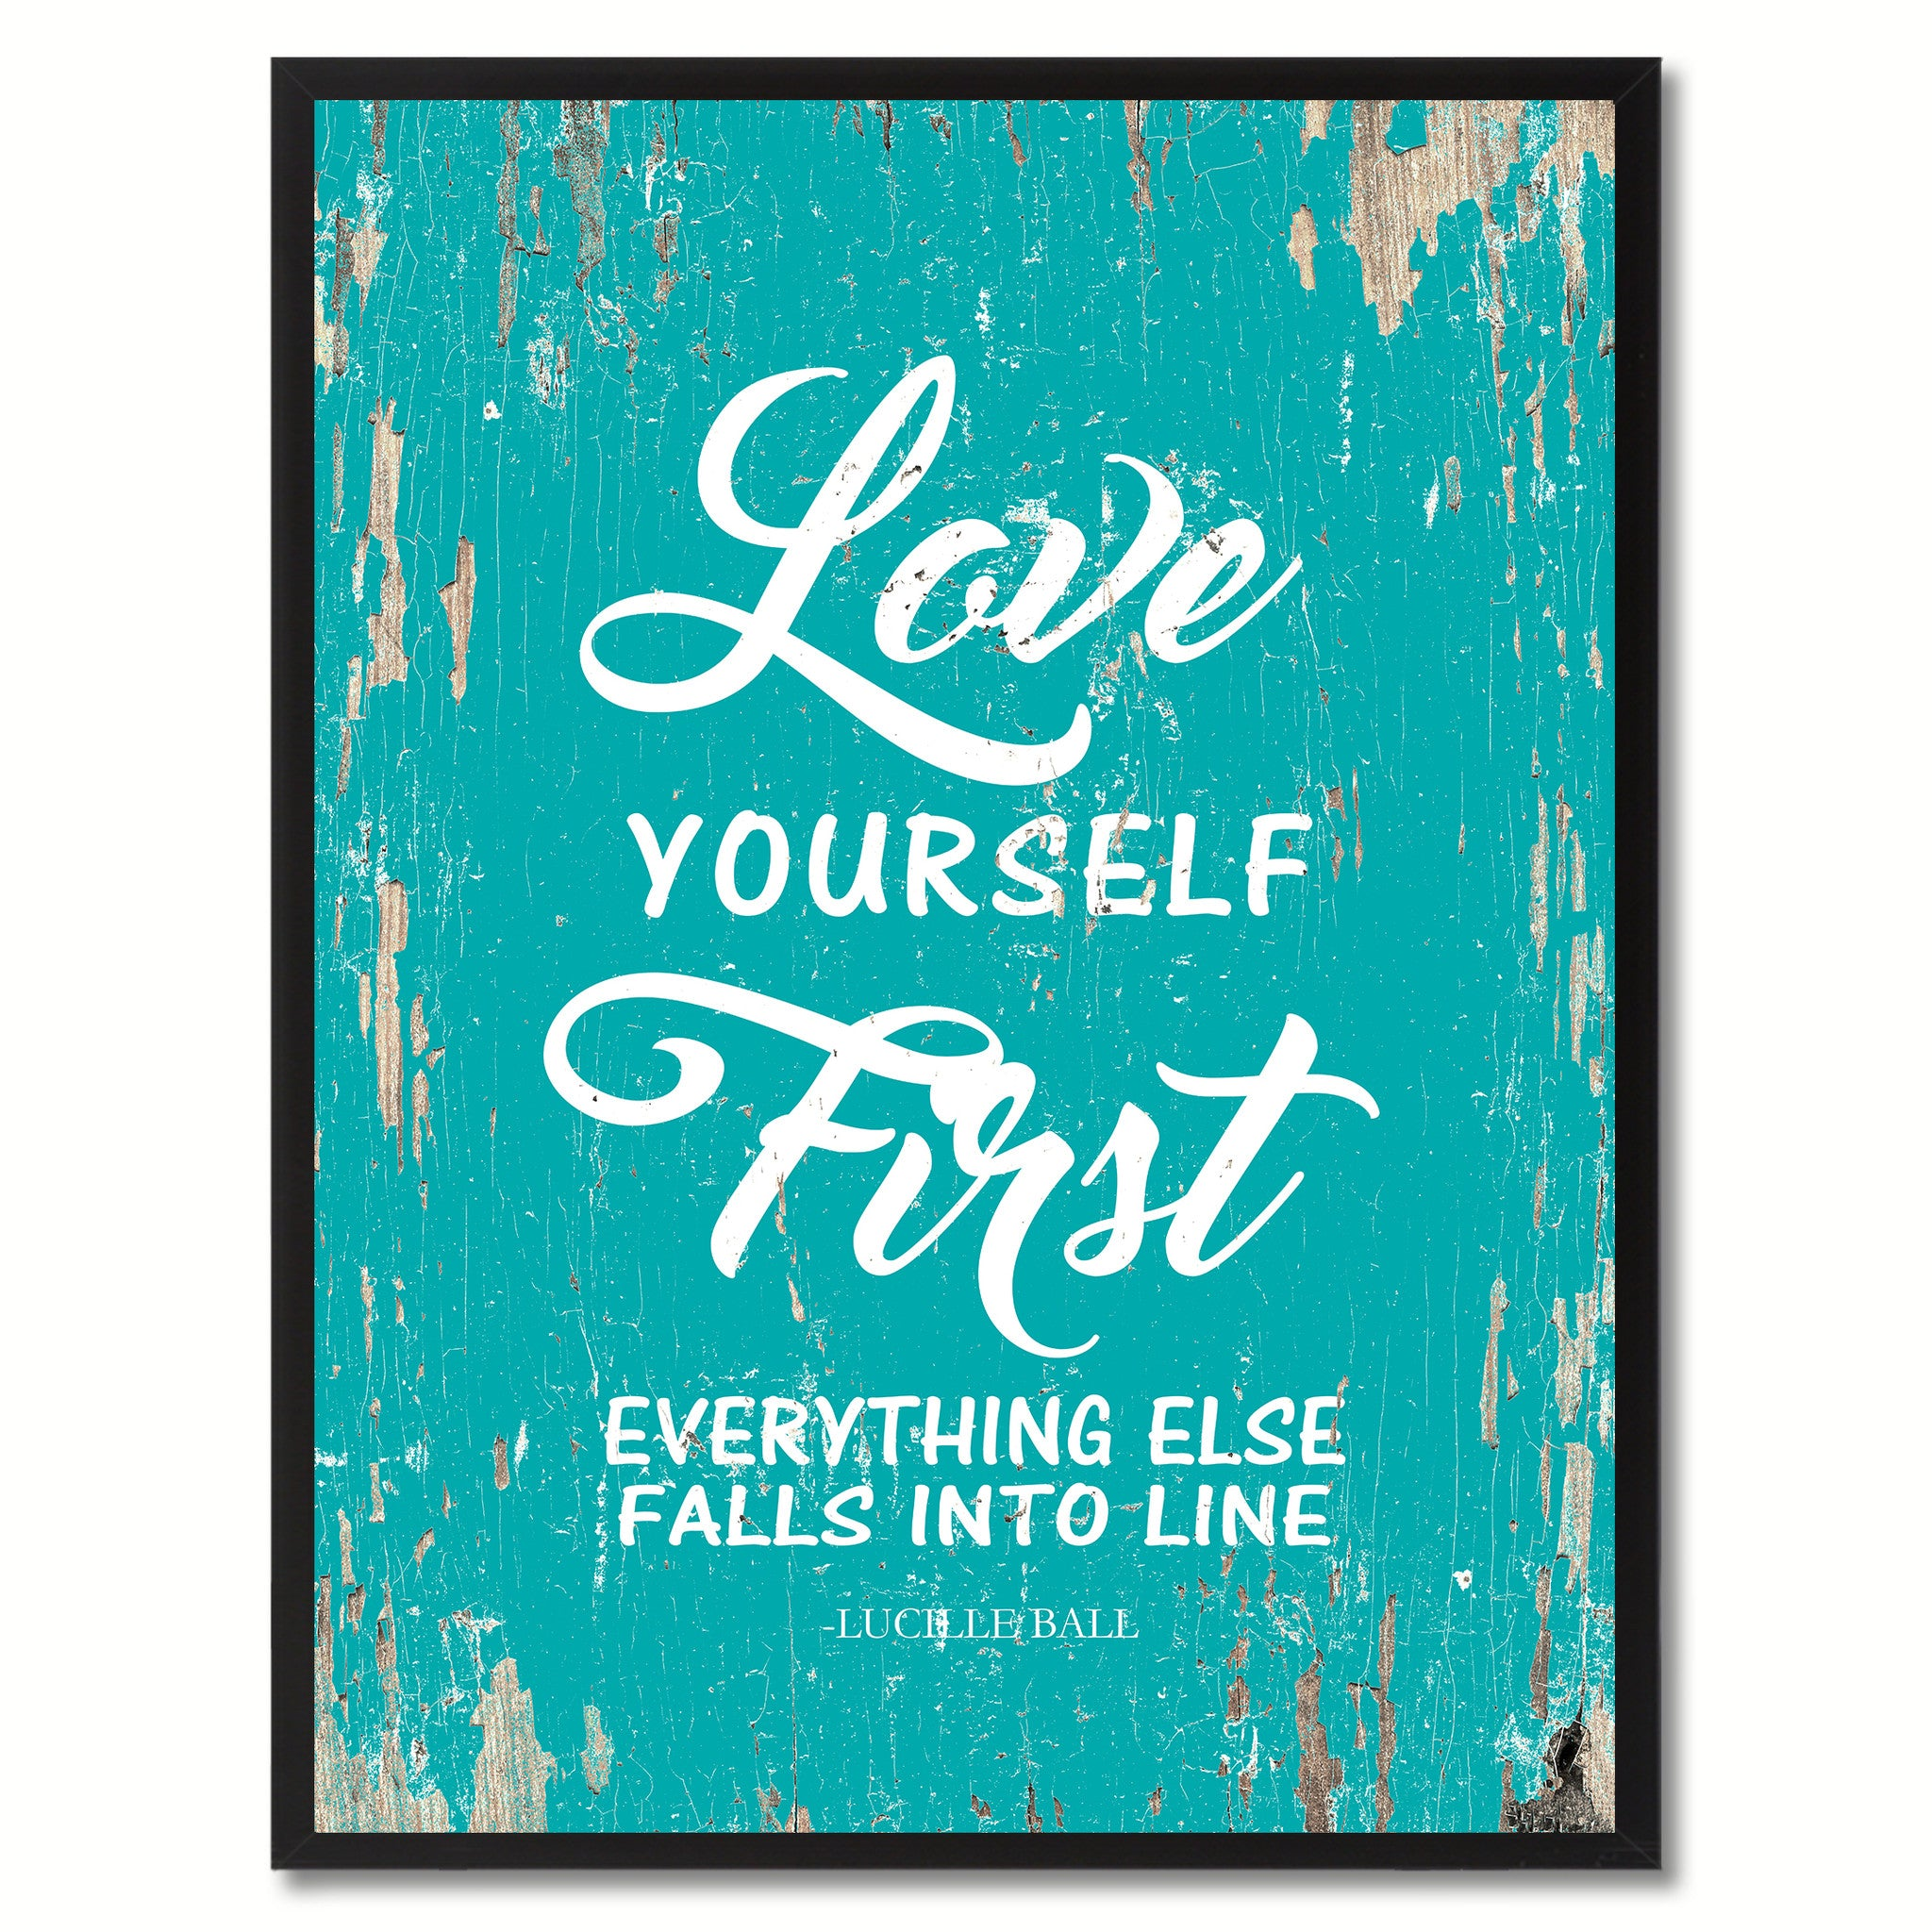 dd6aa938e0011 Love yourself first everything else falls into line - Lucille Ball  Inspirational Motivation Saying Quote Canvas Print Picture Frame Gift Home  Decor Wall Art ...